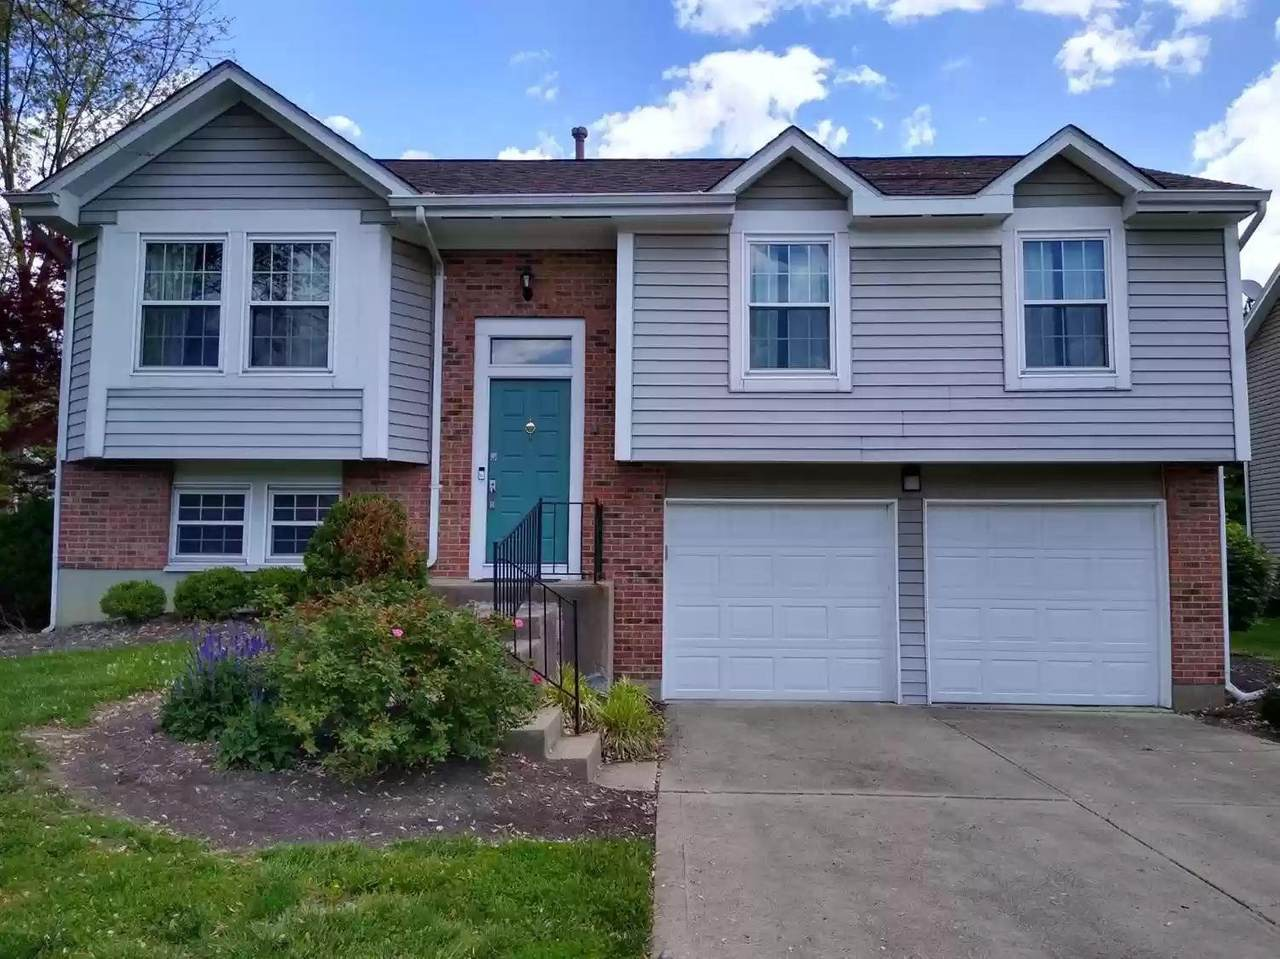 6196 Crooked Creek Dr - Photo 1